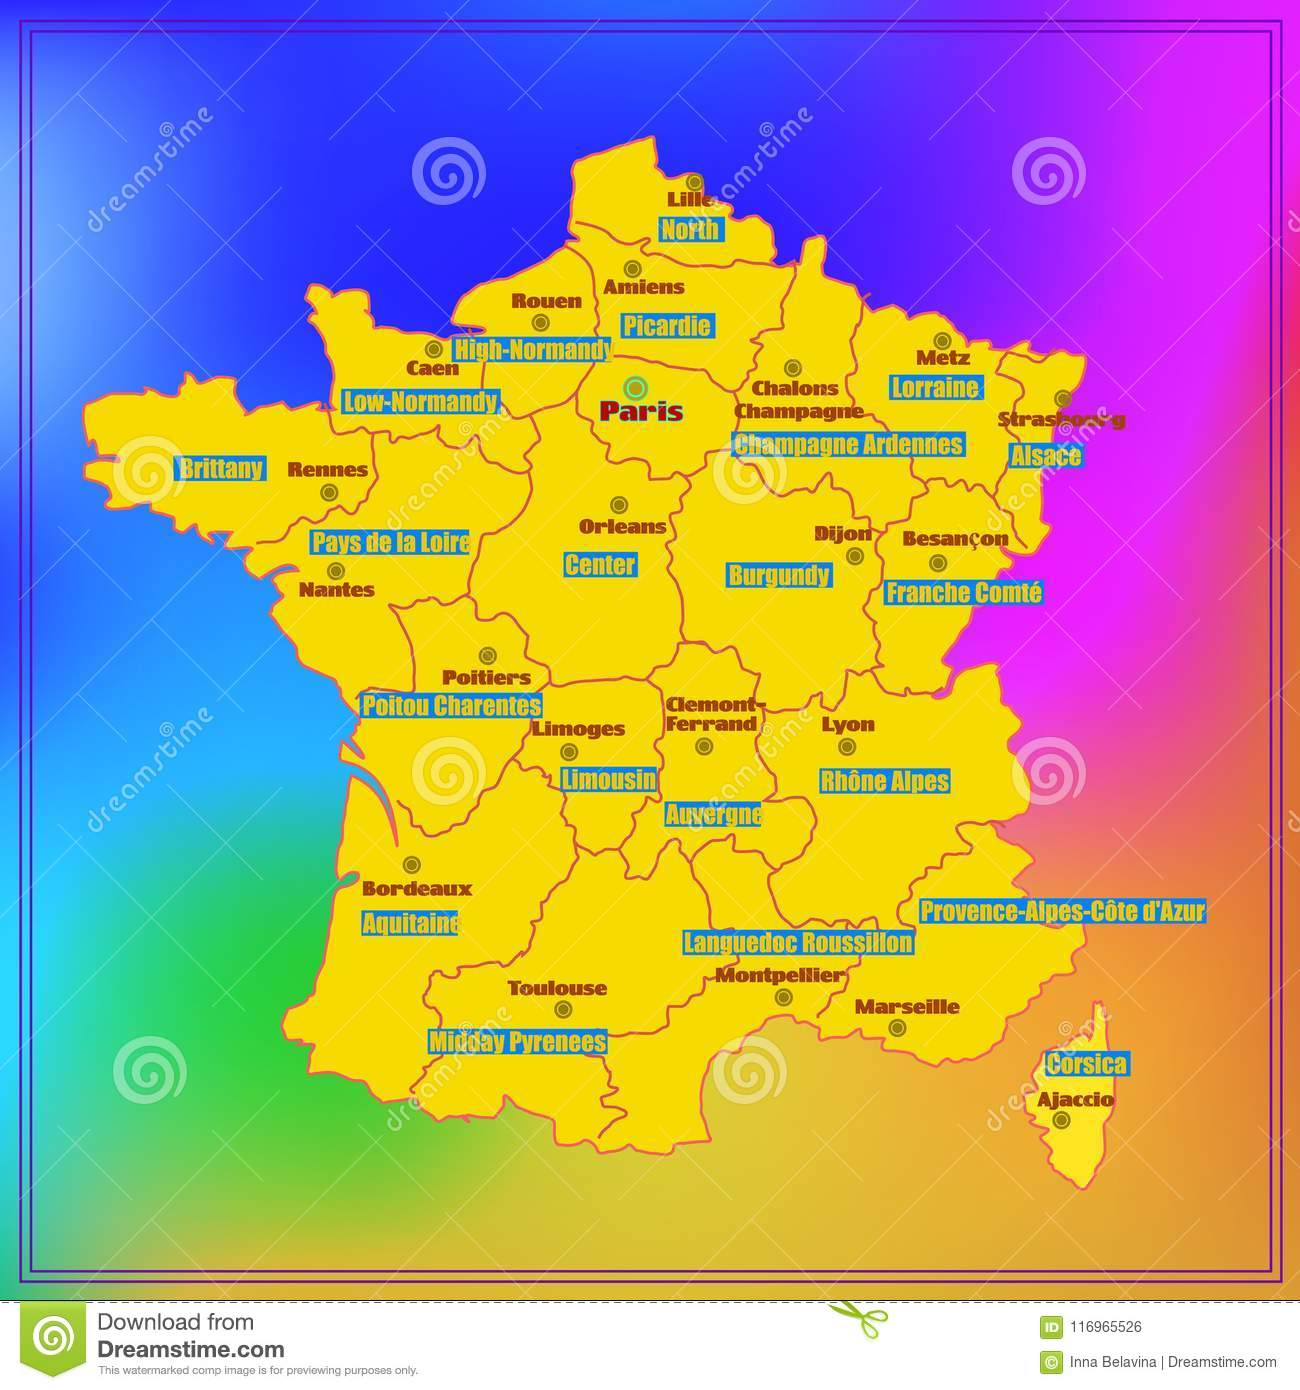 Map Of France Regions With Cities.Map Of France With French Regions Stock Illustration Illustration